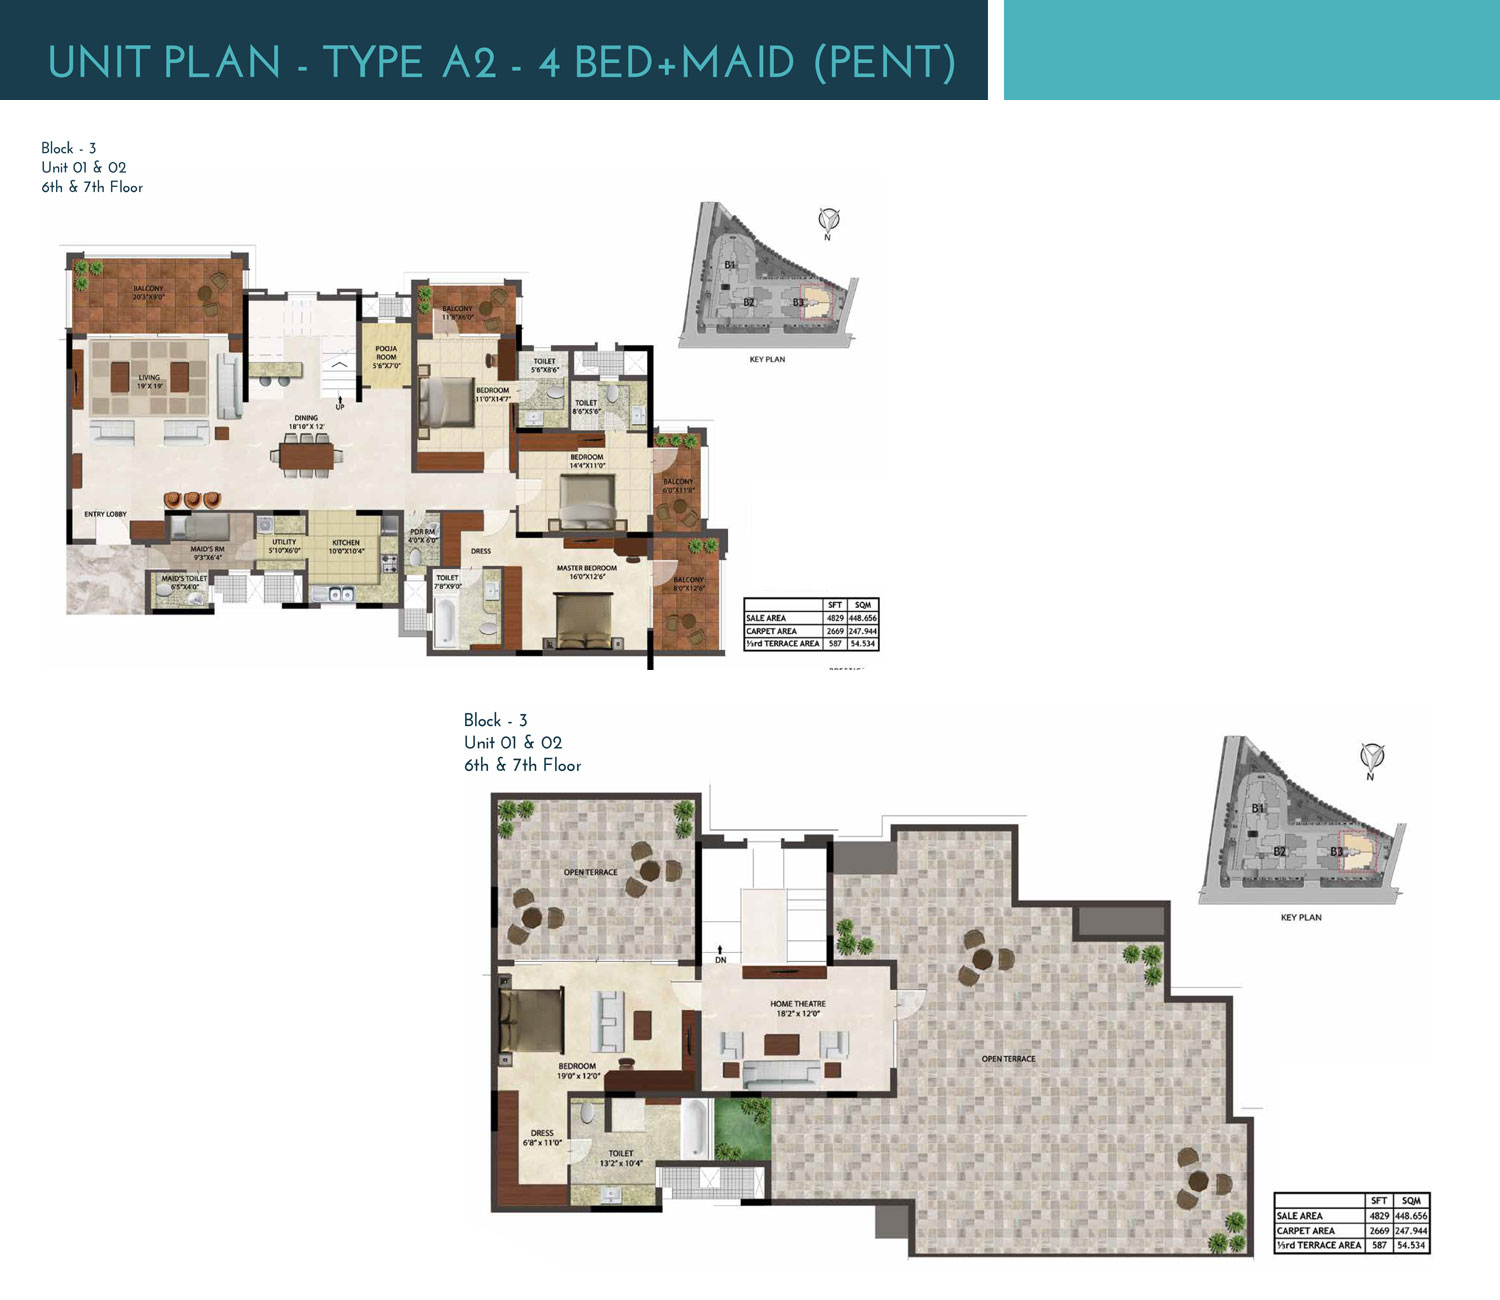 Type A2 - 4829 Sq Ft